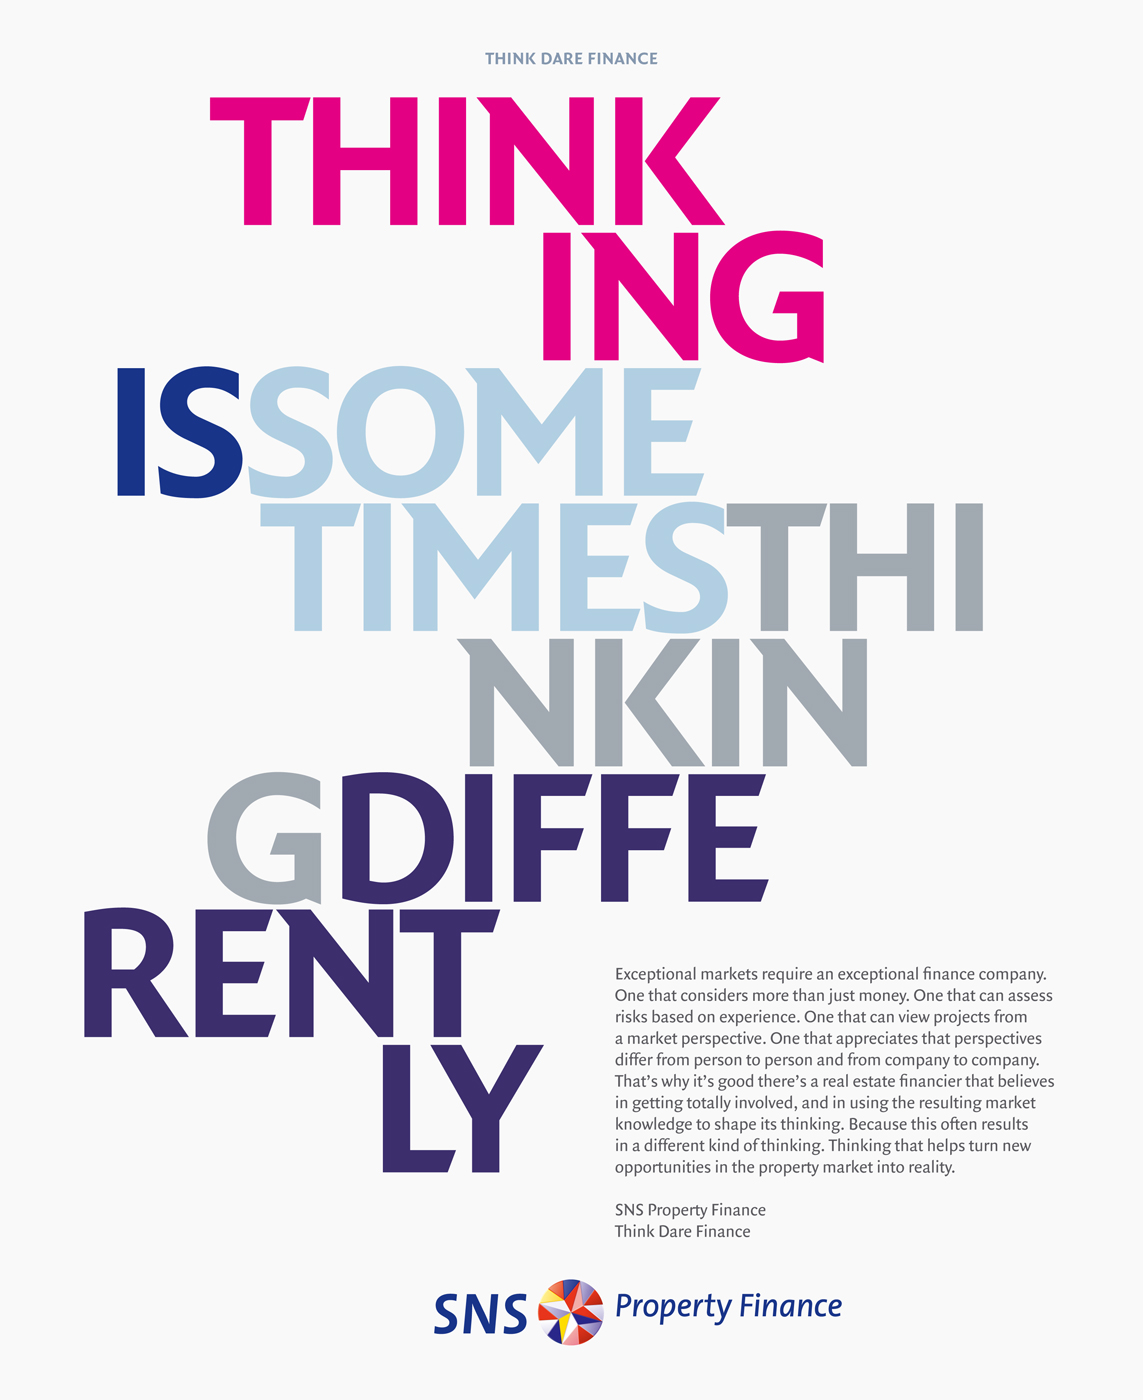 SNS Property Finance, identity, graphic design, typography, corporate brochure, rebranding